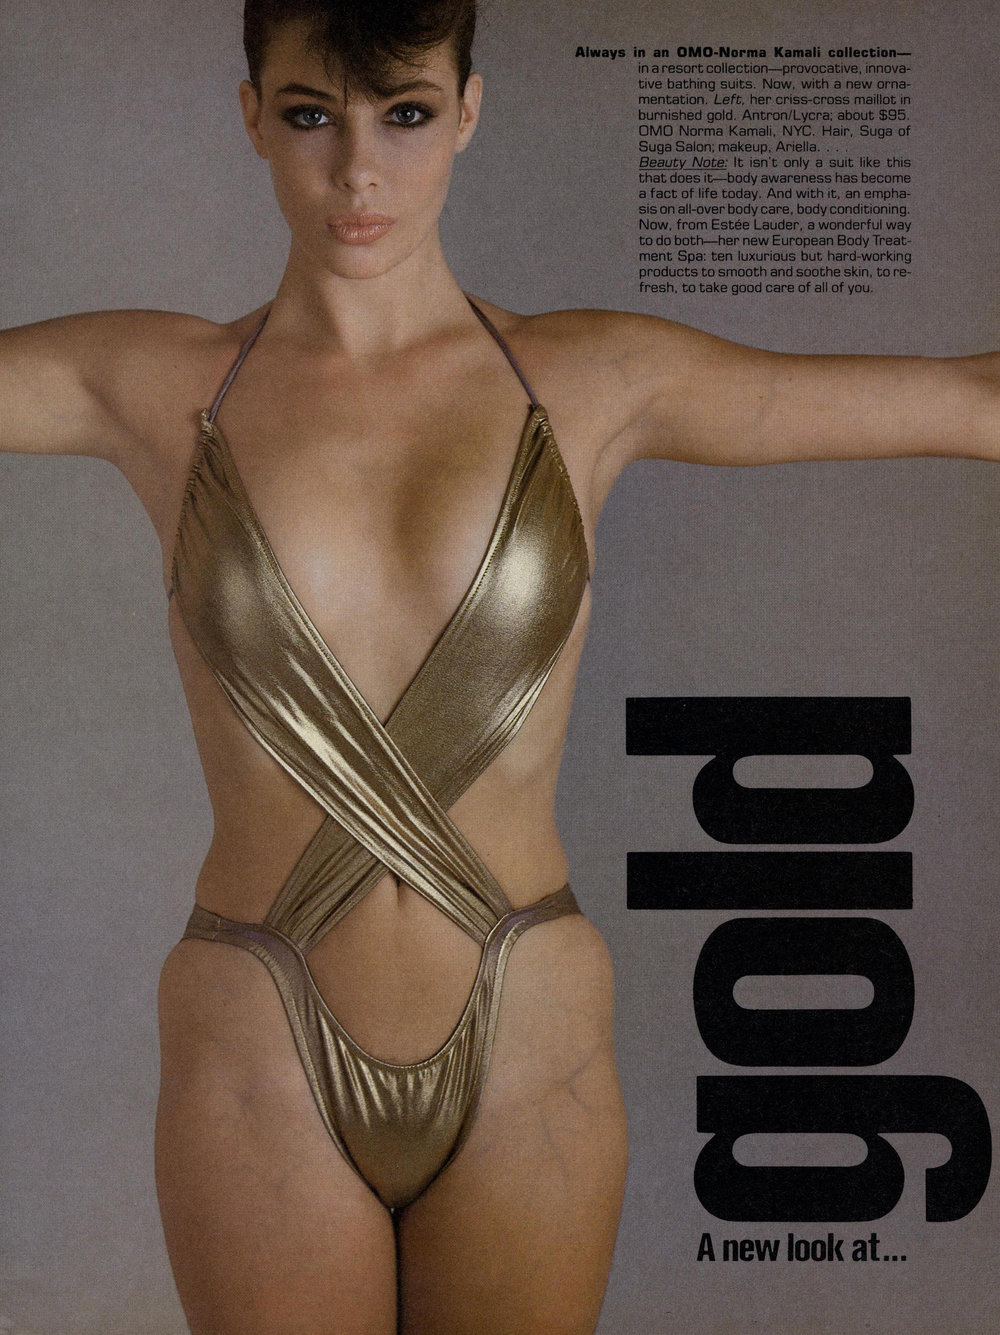 Kelly LeBrock in a minuscule OMO swimsuit. Photo by Avedon for Vogue, November 1981.